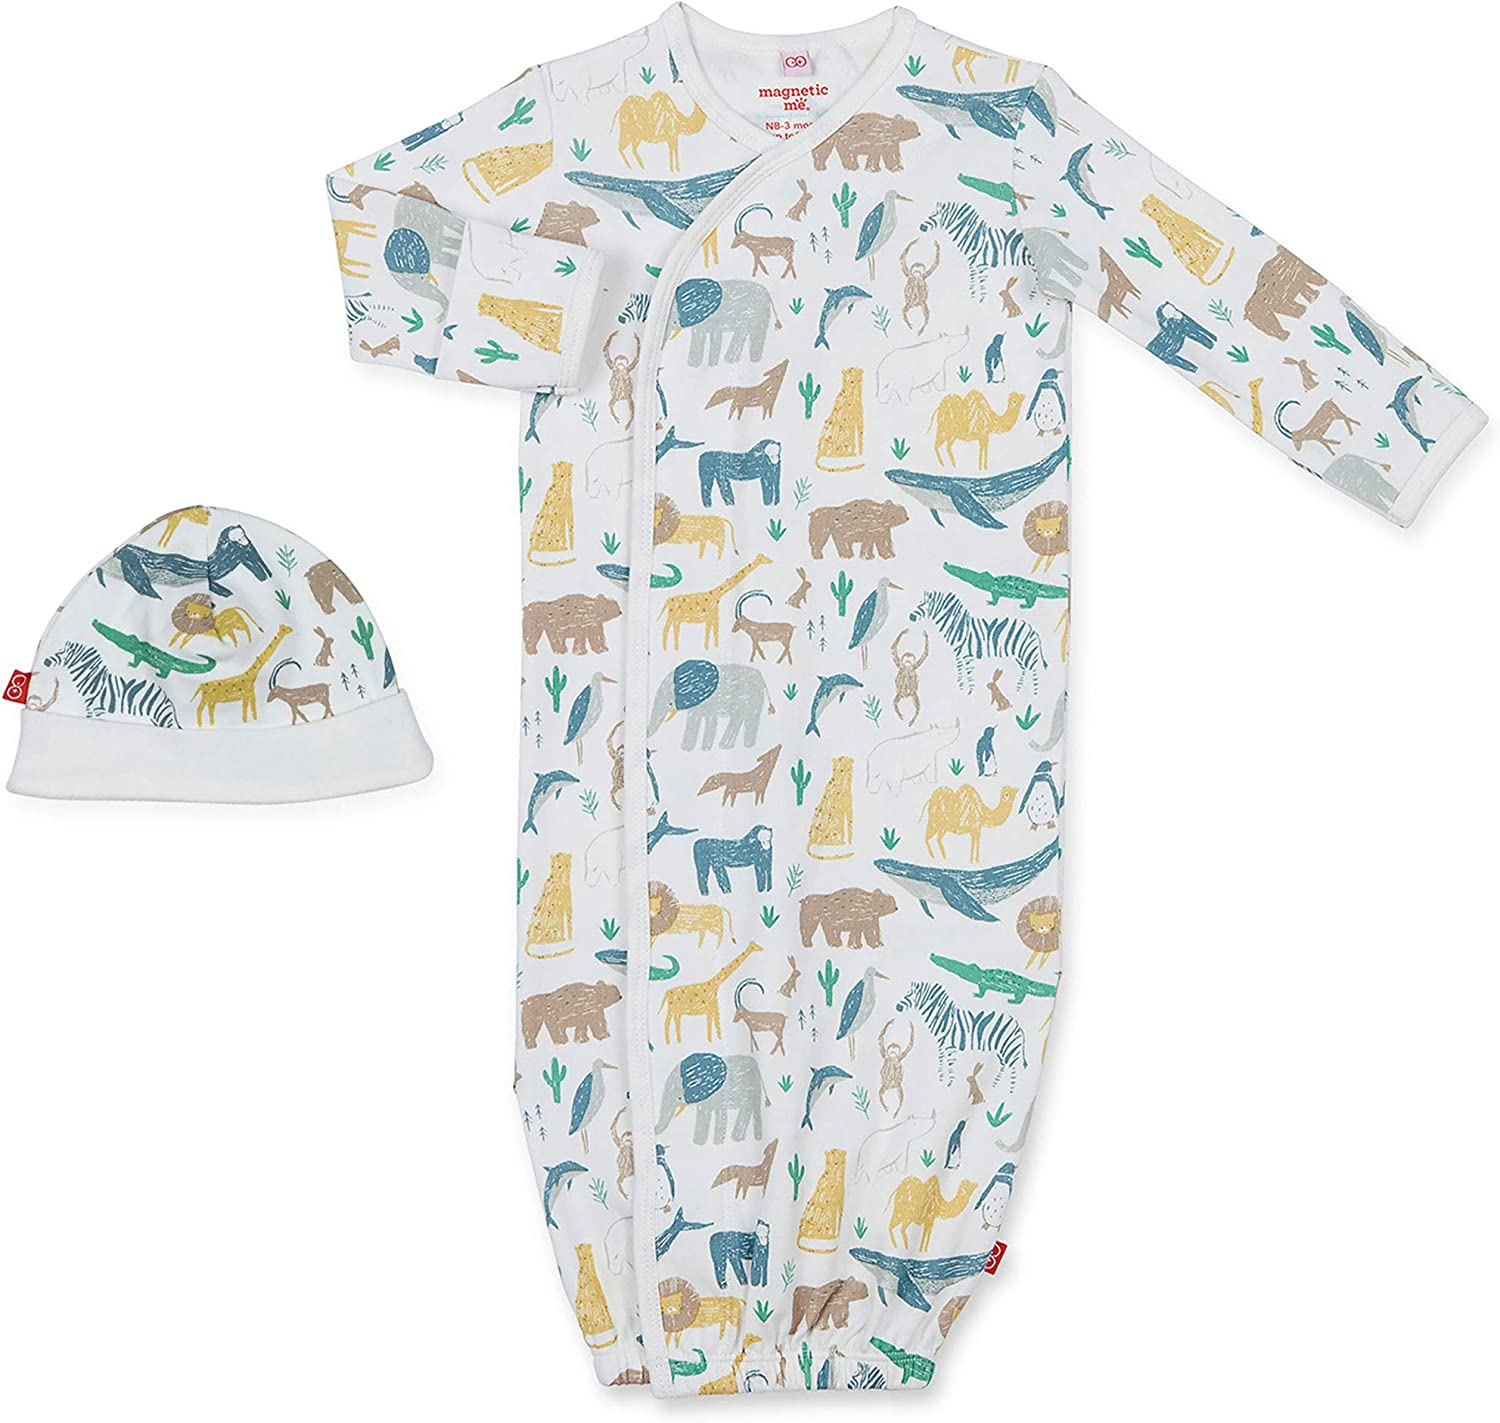 Gorgeous Magnetic Max 75% OFF Me by Magnificent Baby Cotton Gown Organic 100% Sack